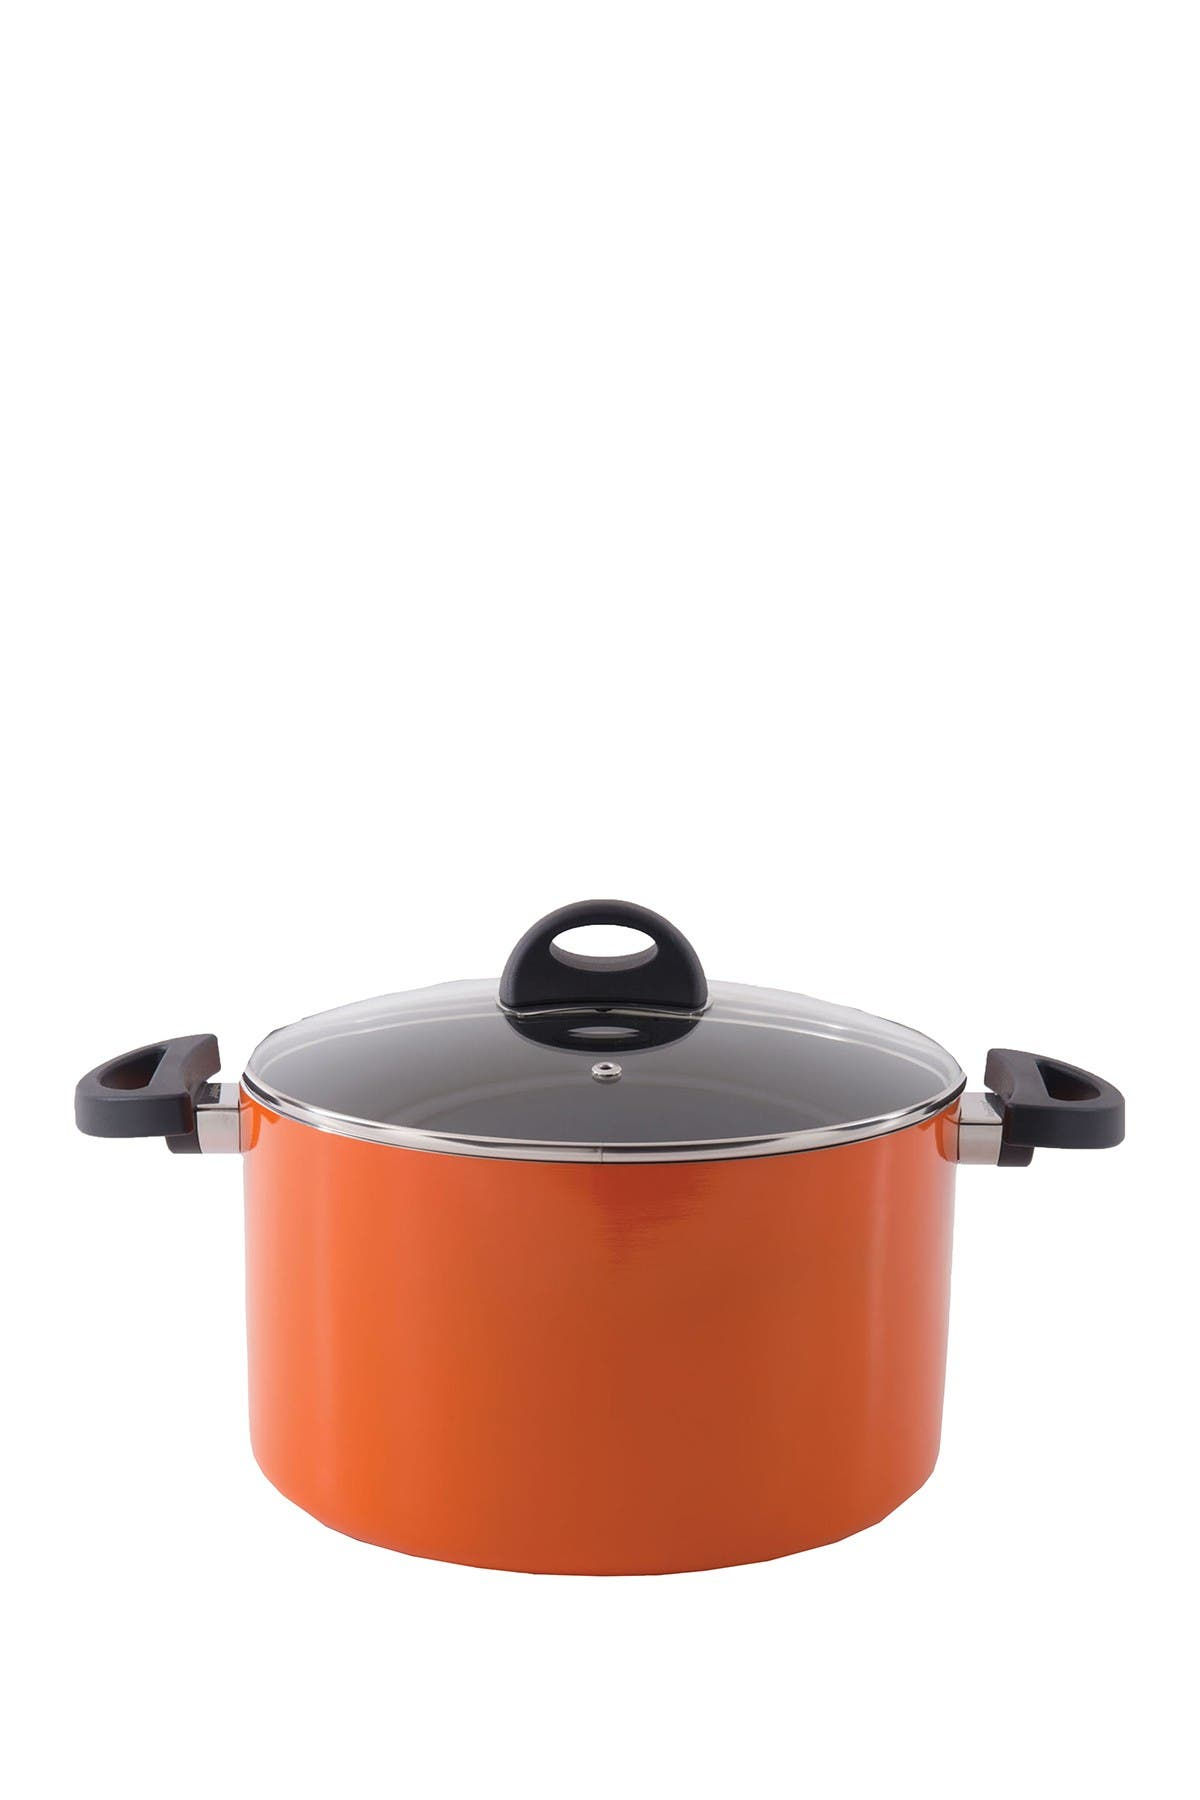 Image of BergHOFF Orange 7 qt. Aluminum Covered Stockpot